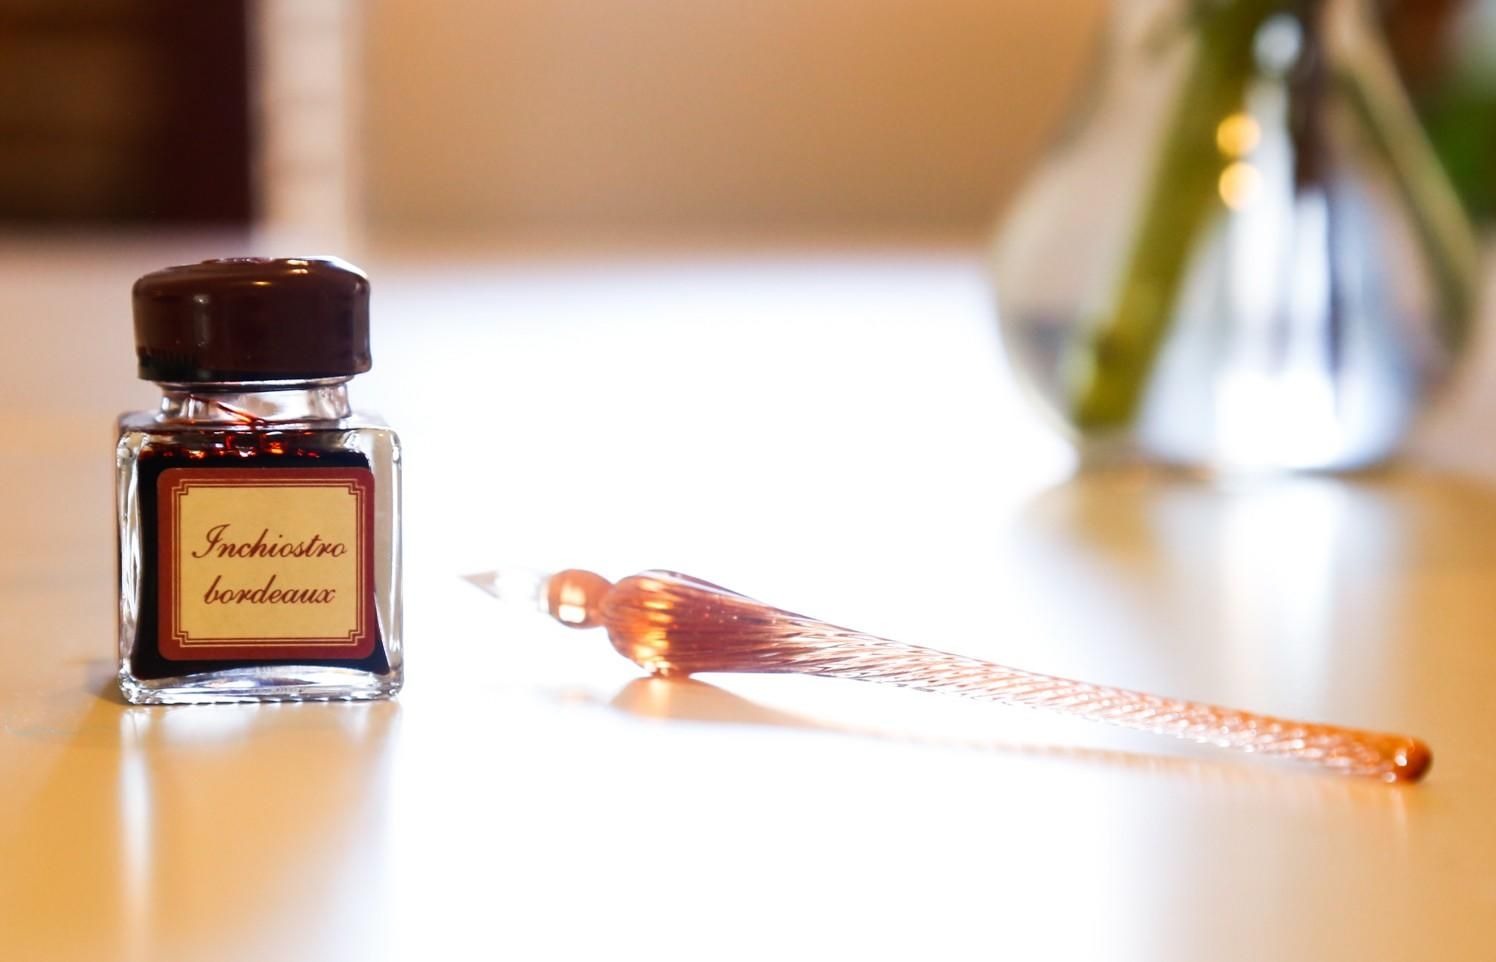 Italian glass pen and Inchiostro bordeaux ink bottle